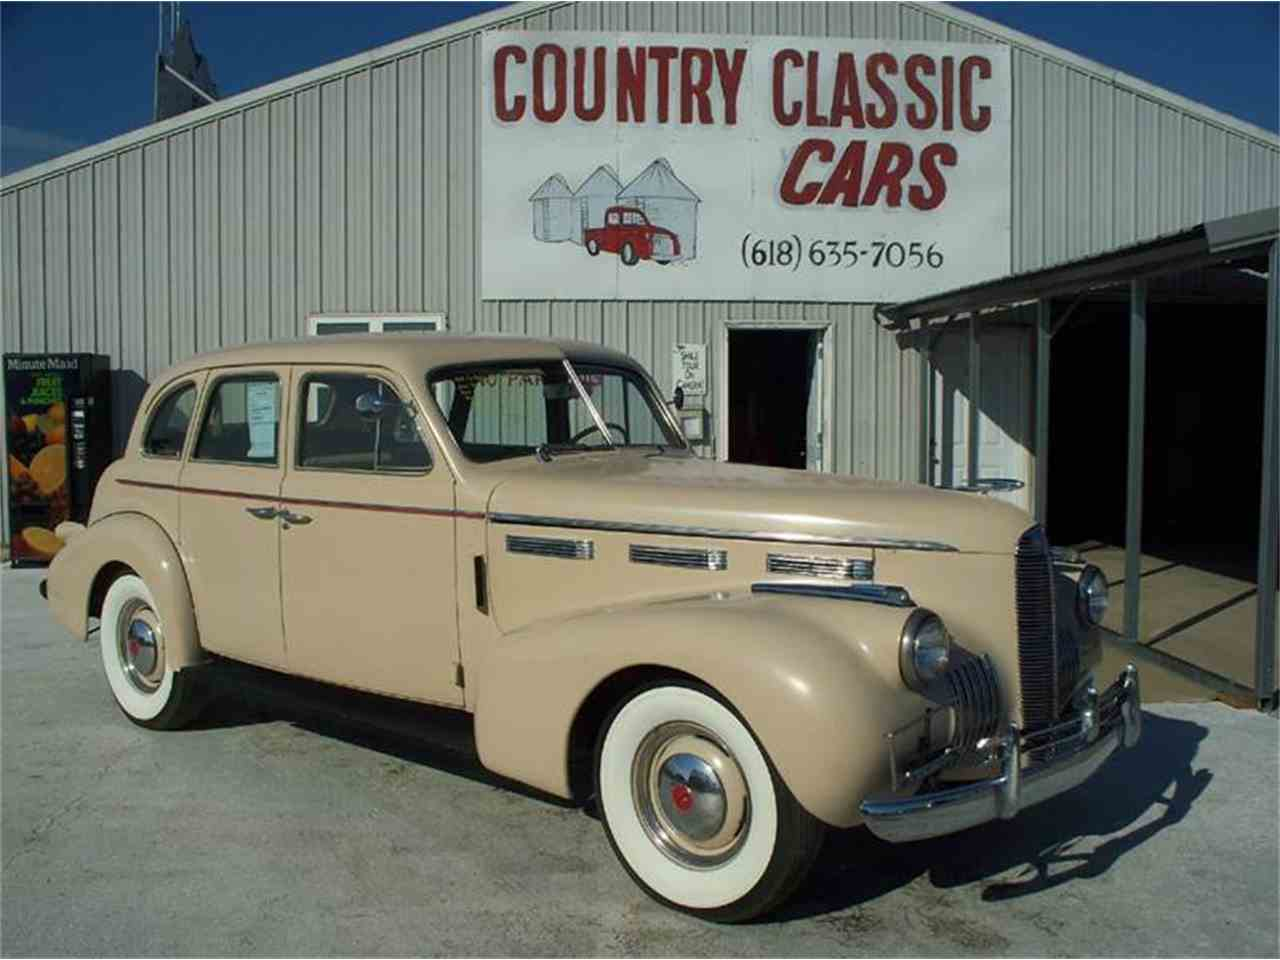 Cadillac Lasalle For Sale On Classiccars Com Available